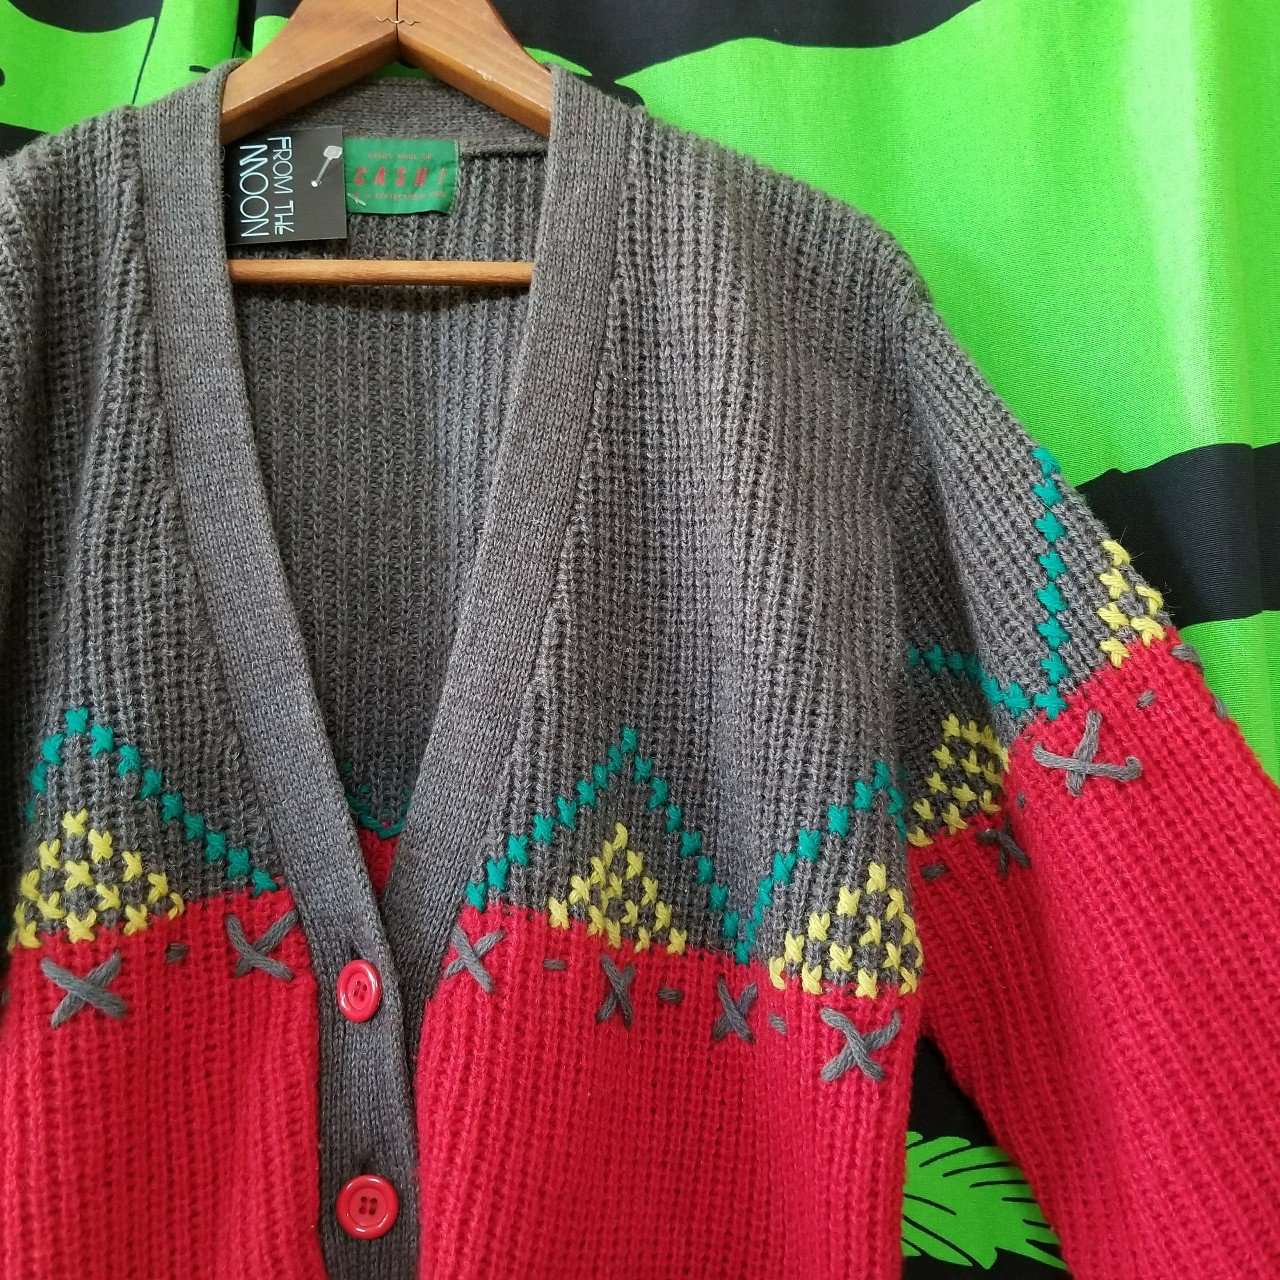 e8ce3f4429 Vintage knit cardigan with